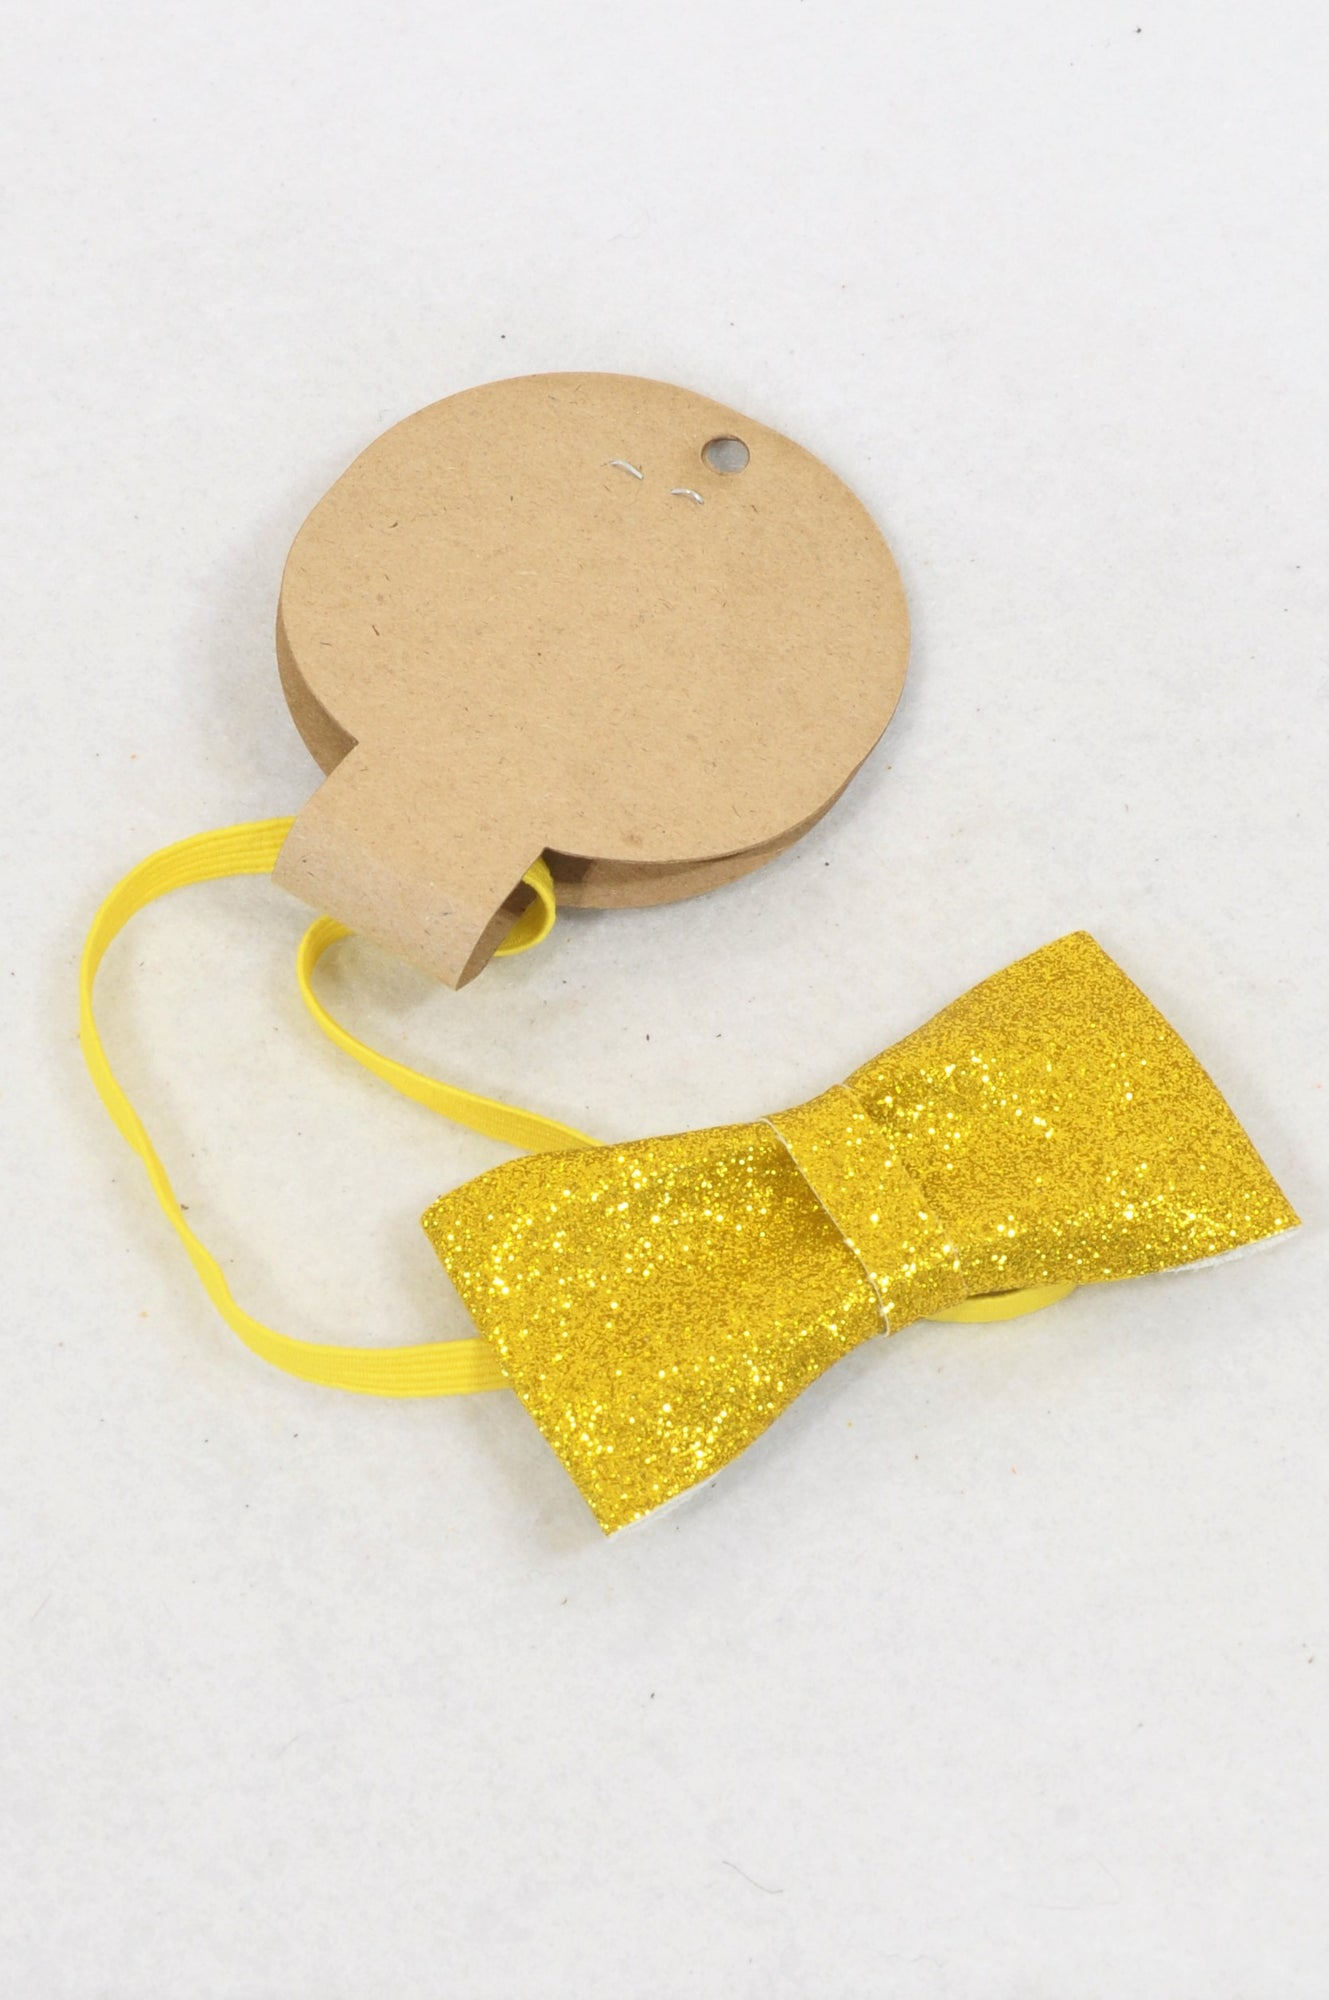 New Unbranded Golden Glitter Bow Elastic Headband Girls 6 months to 3 years